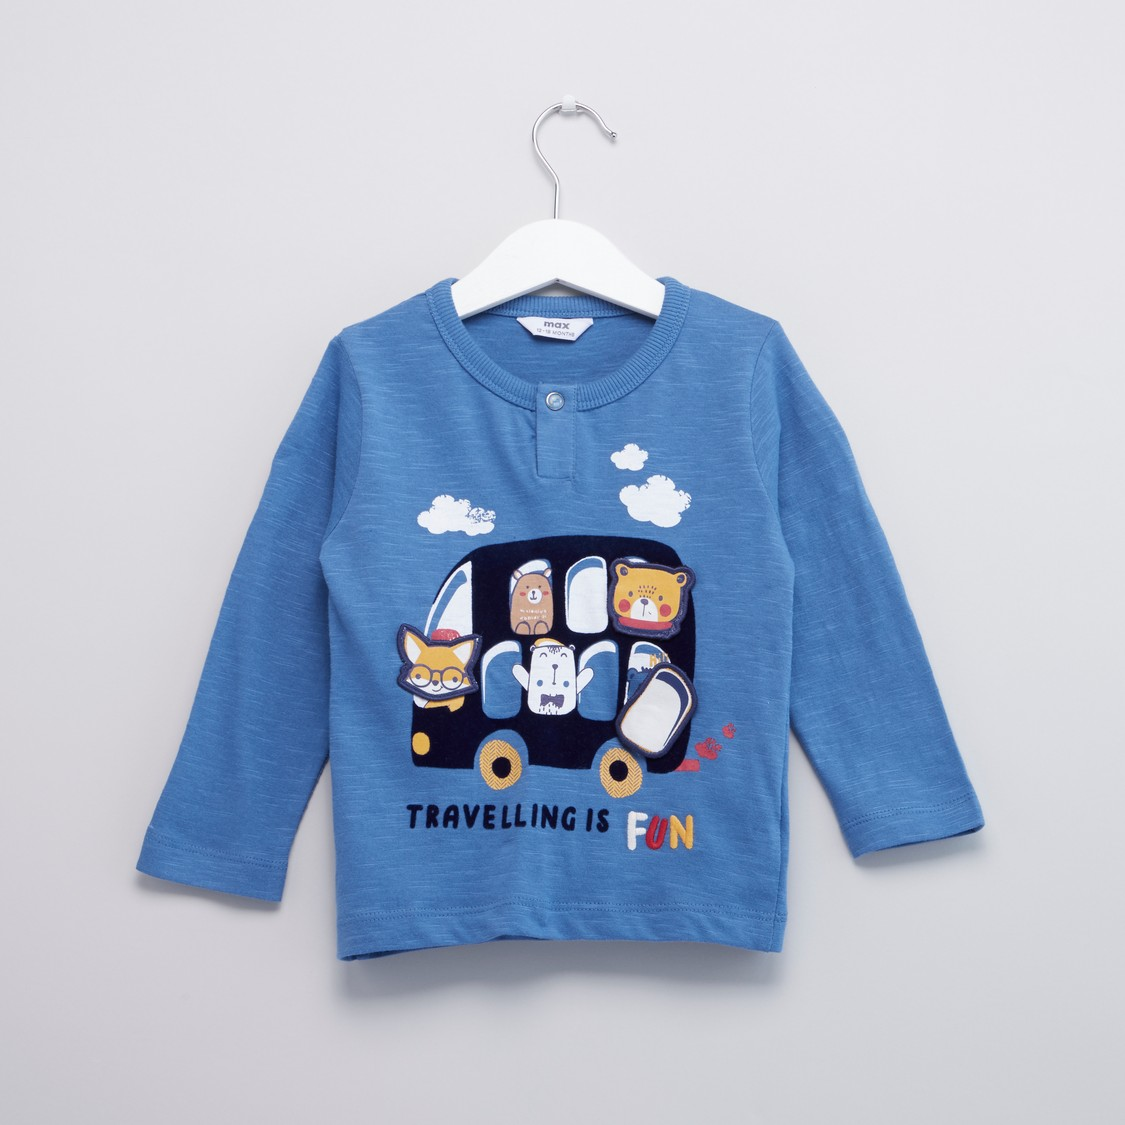 Scout Traveling Bus Print Round Neck T-shirt with Long Sleeves